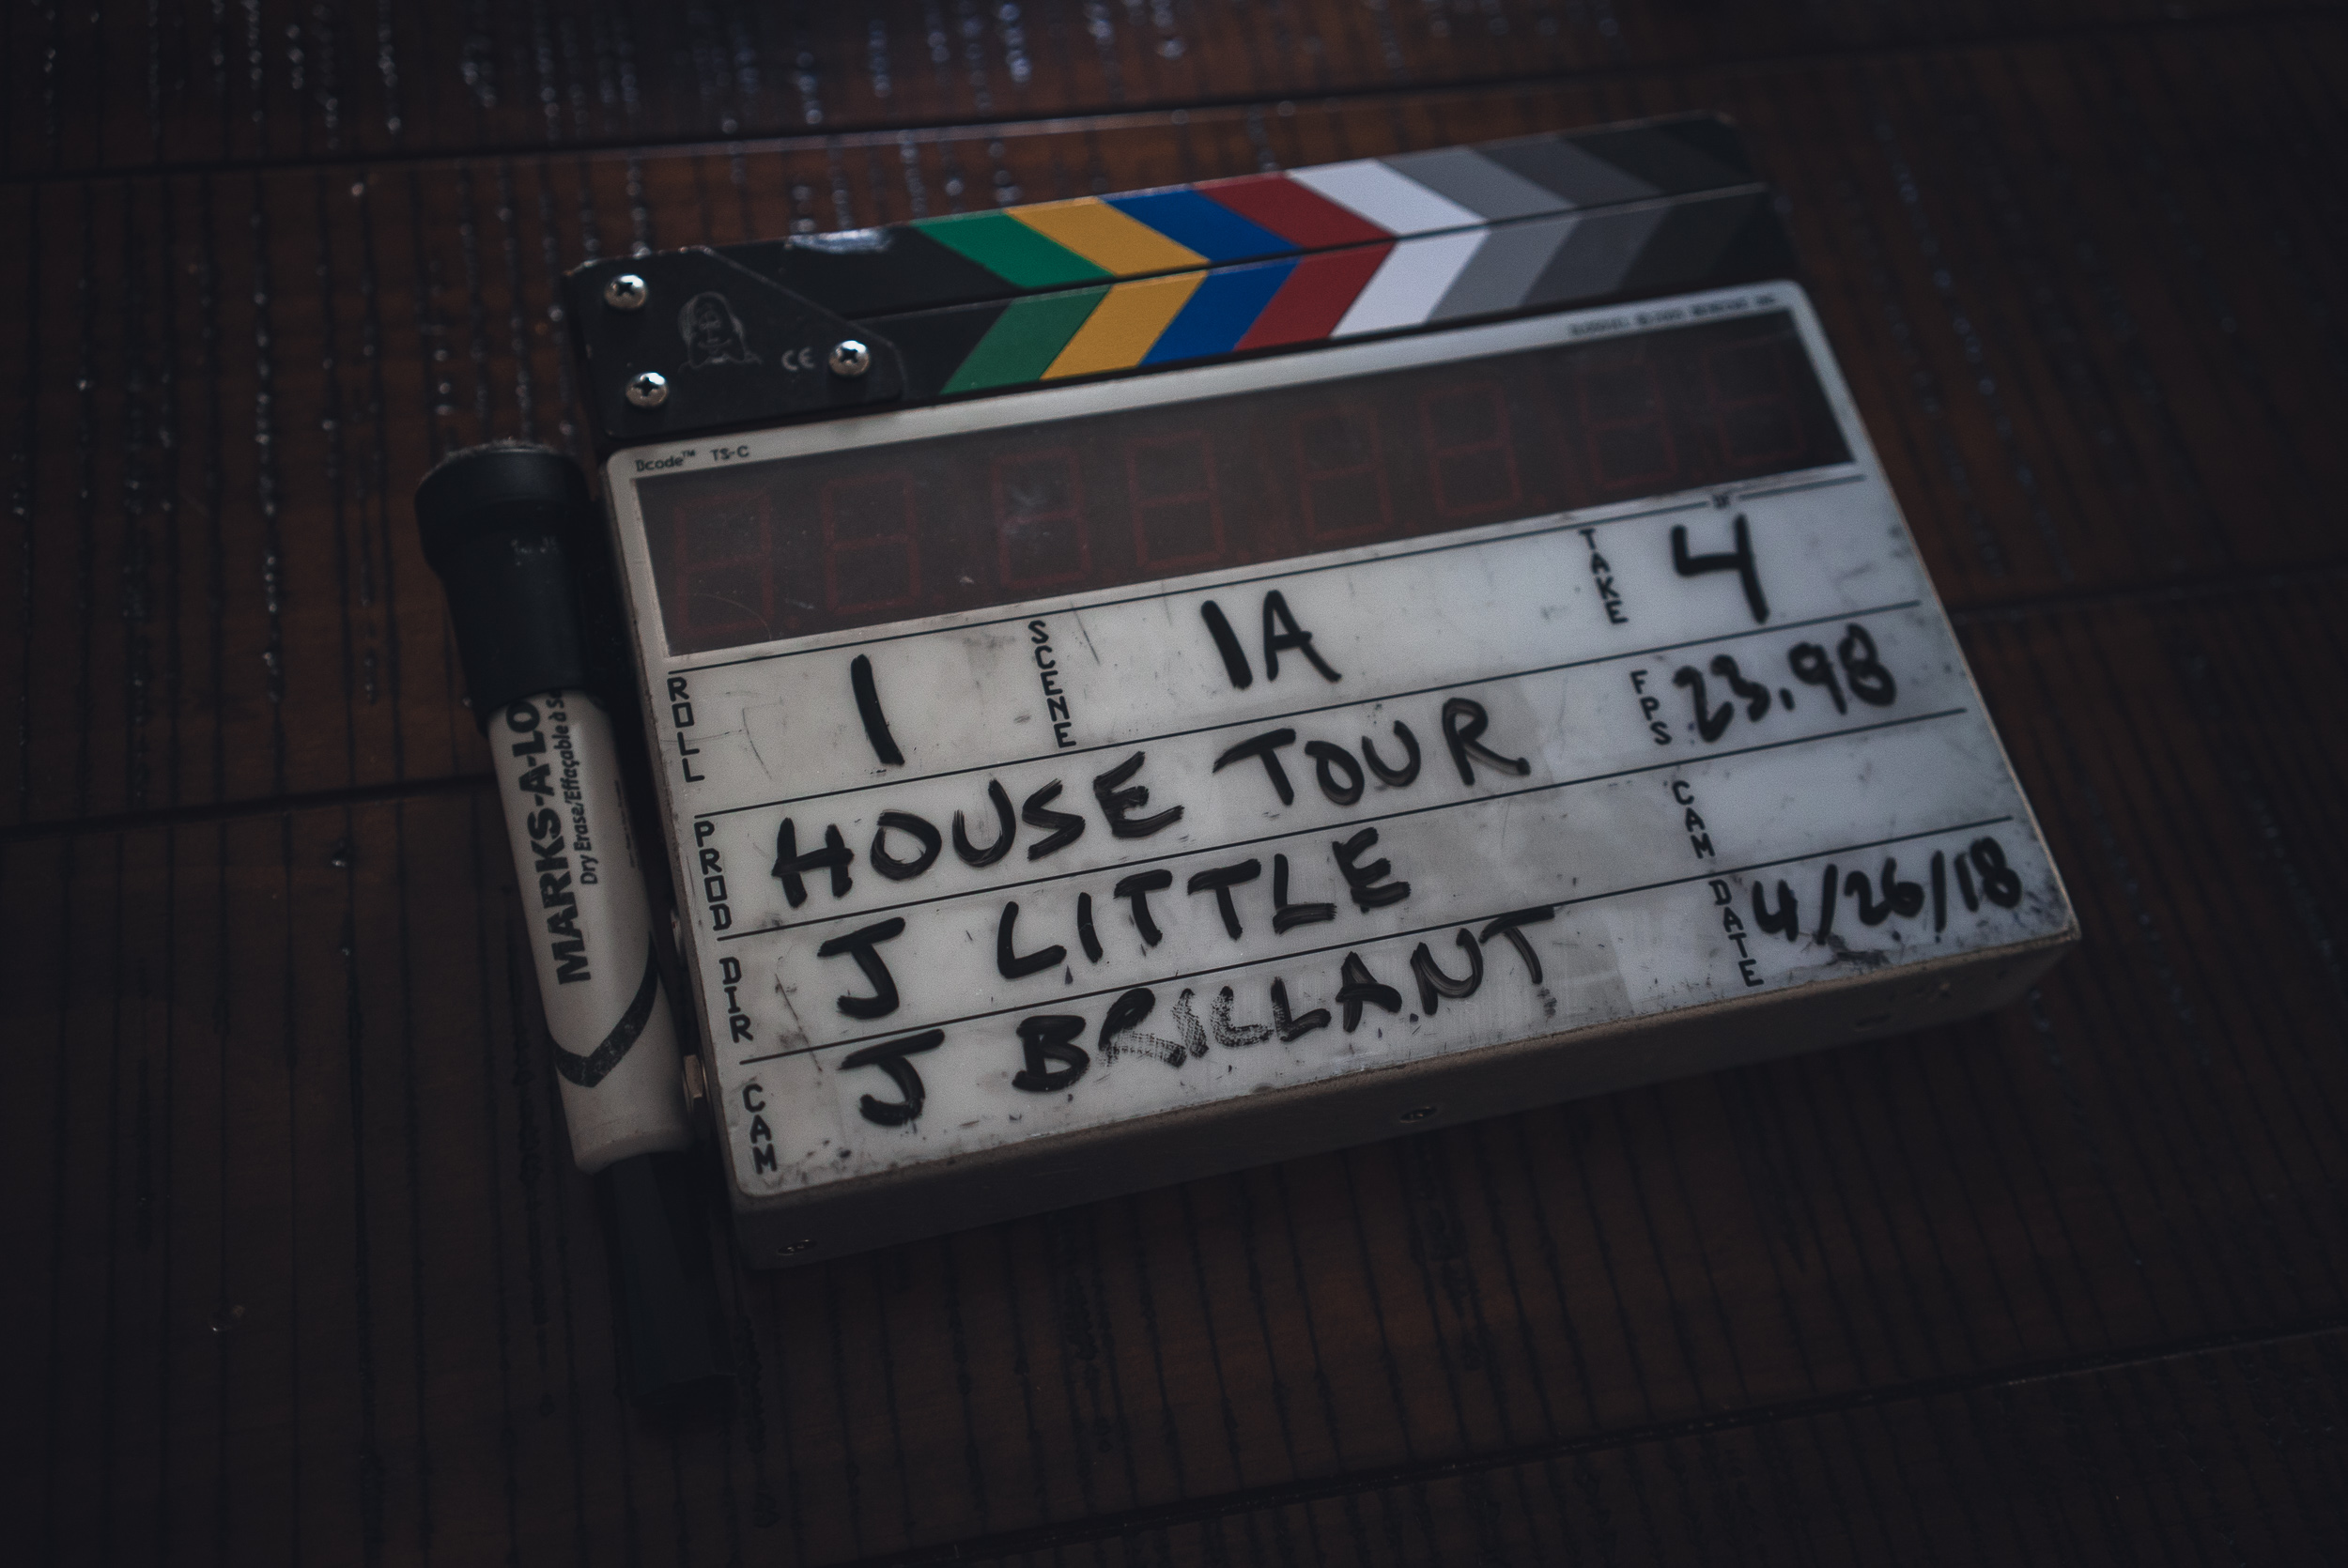 House Tour_PROD STILL_20180426_030.jpg